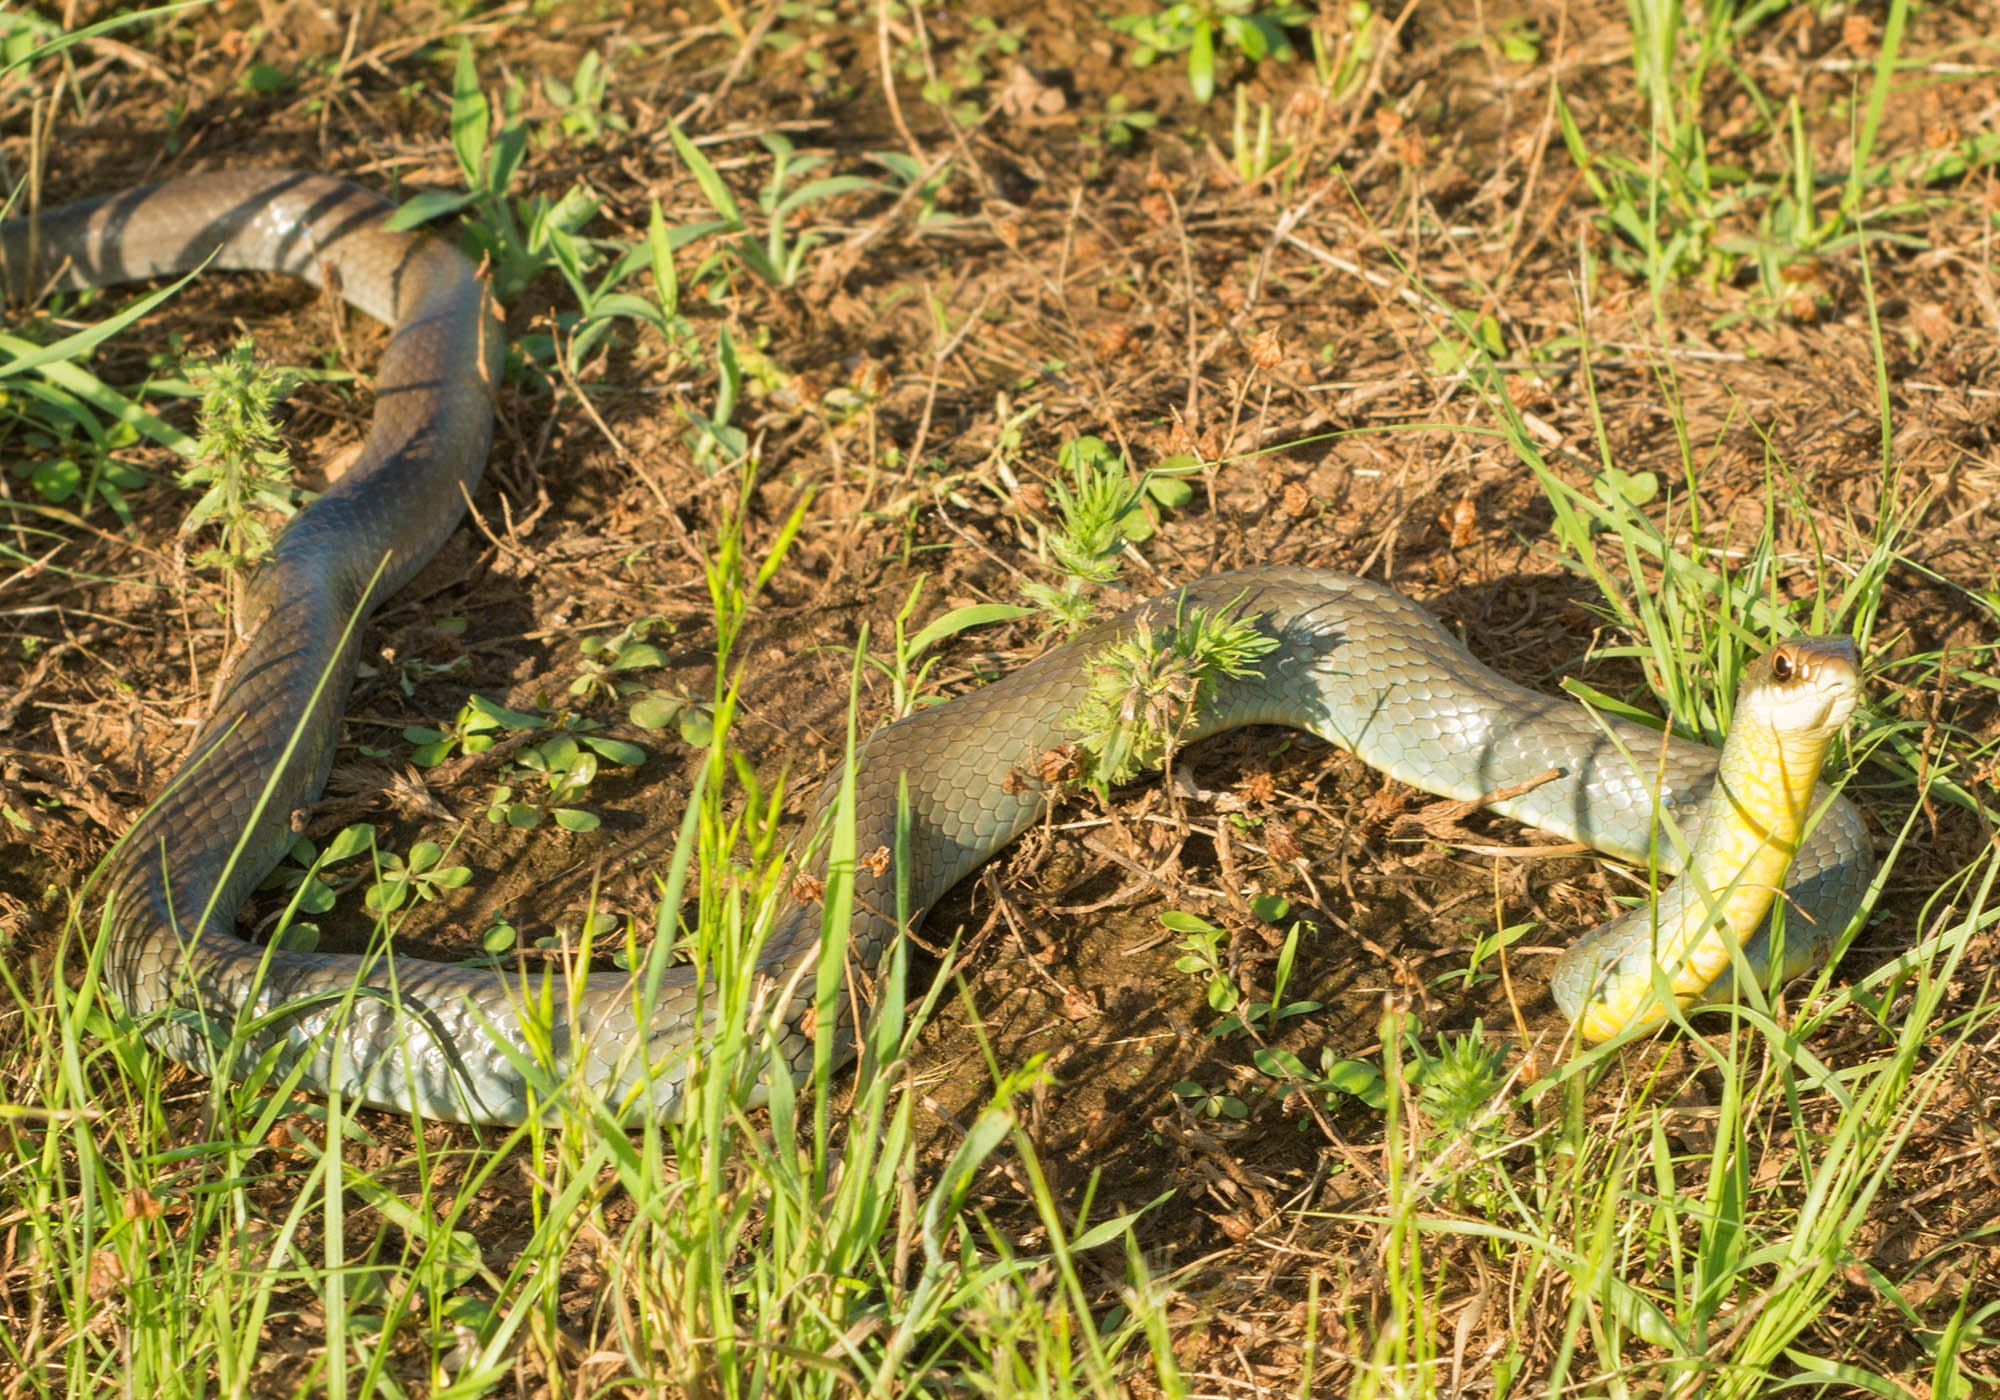 yellow bellied racer